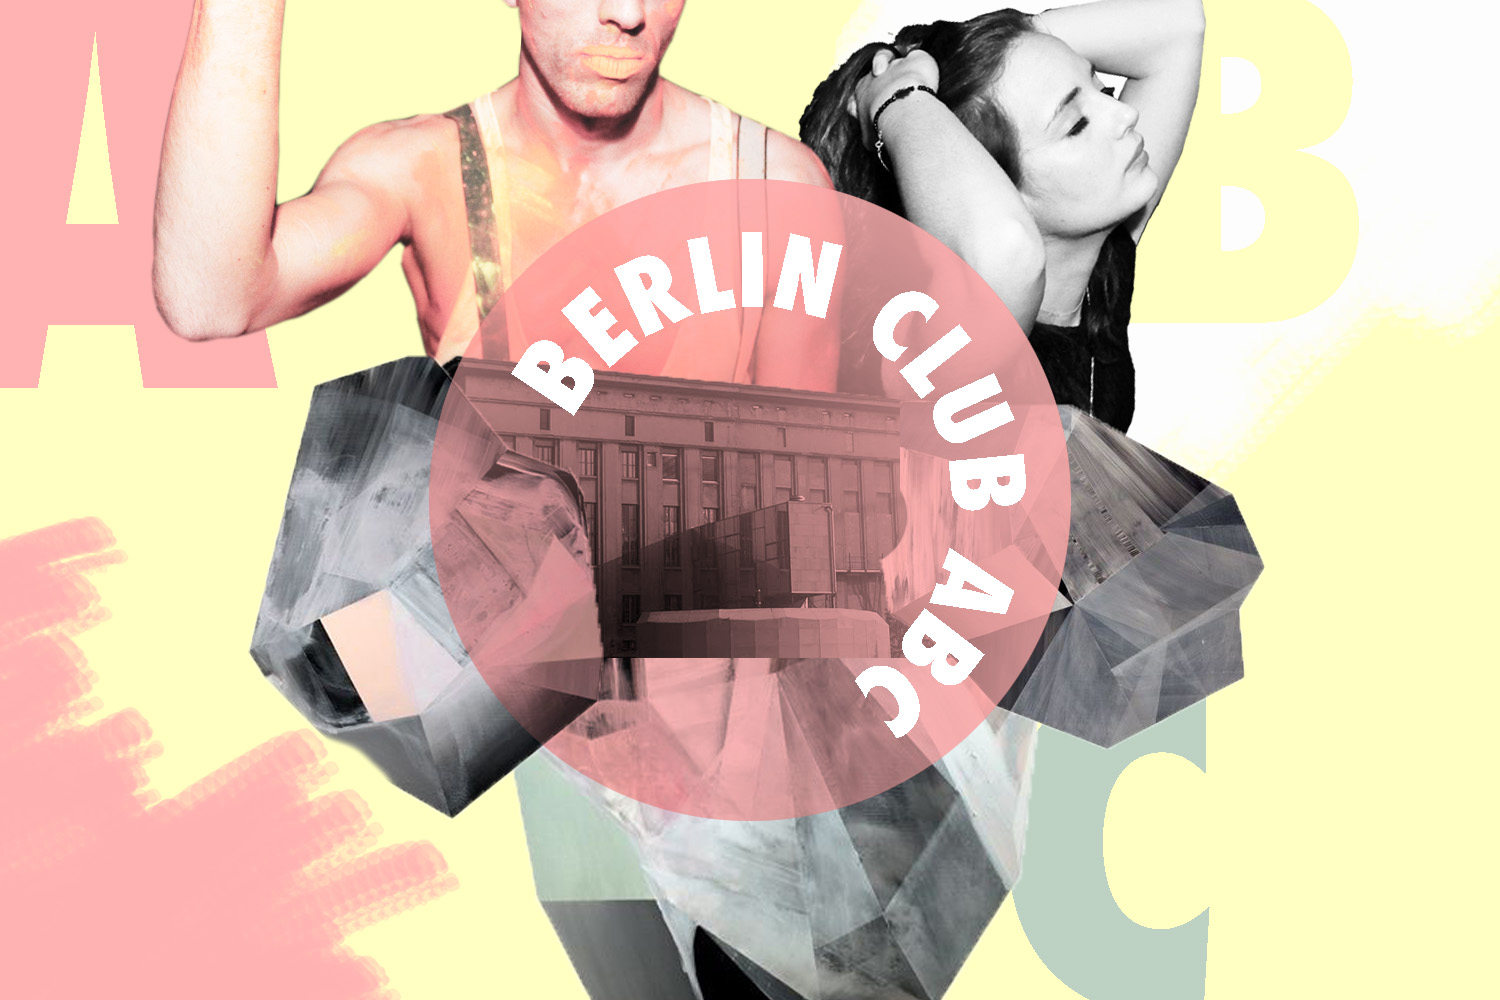 The Club ABC